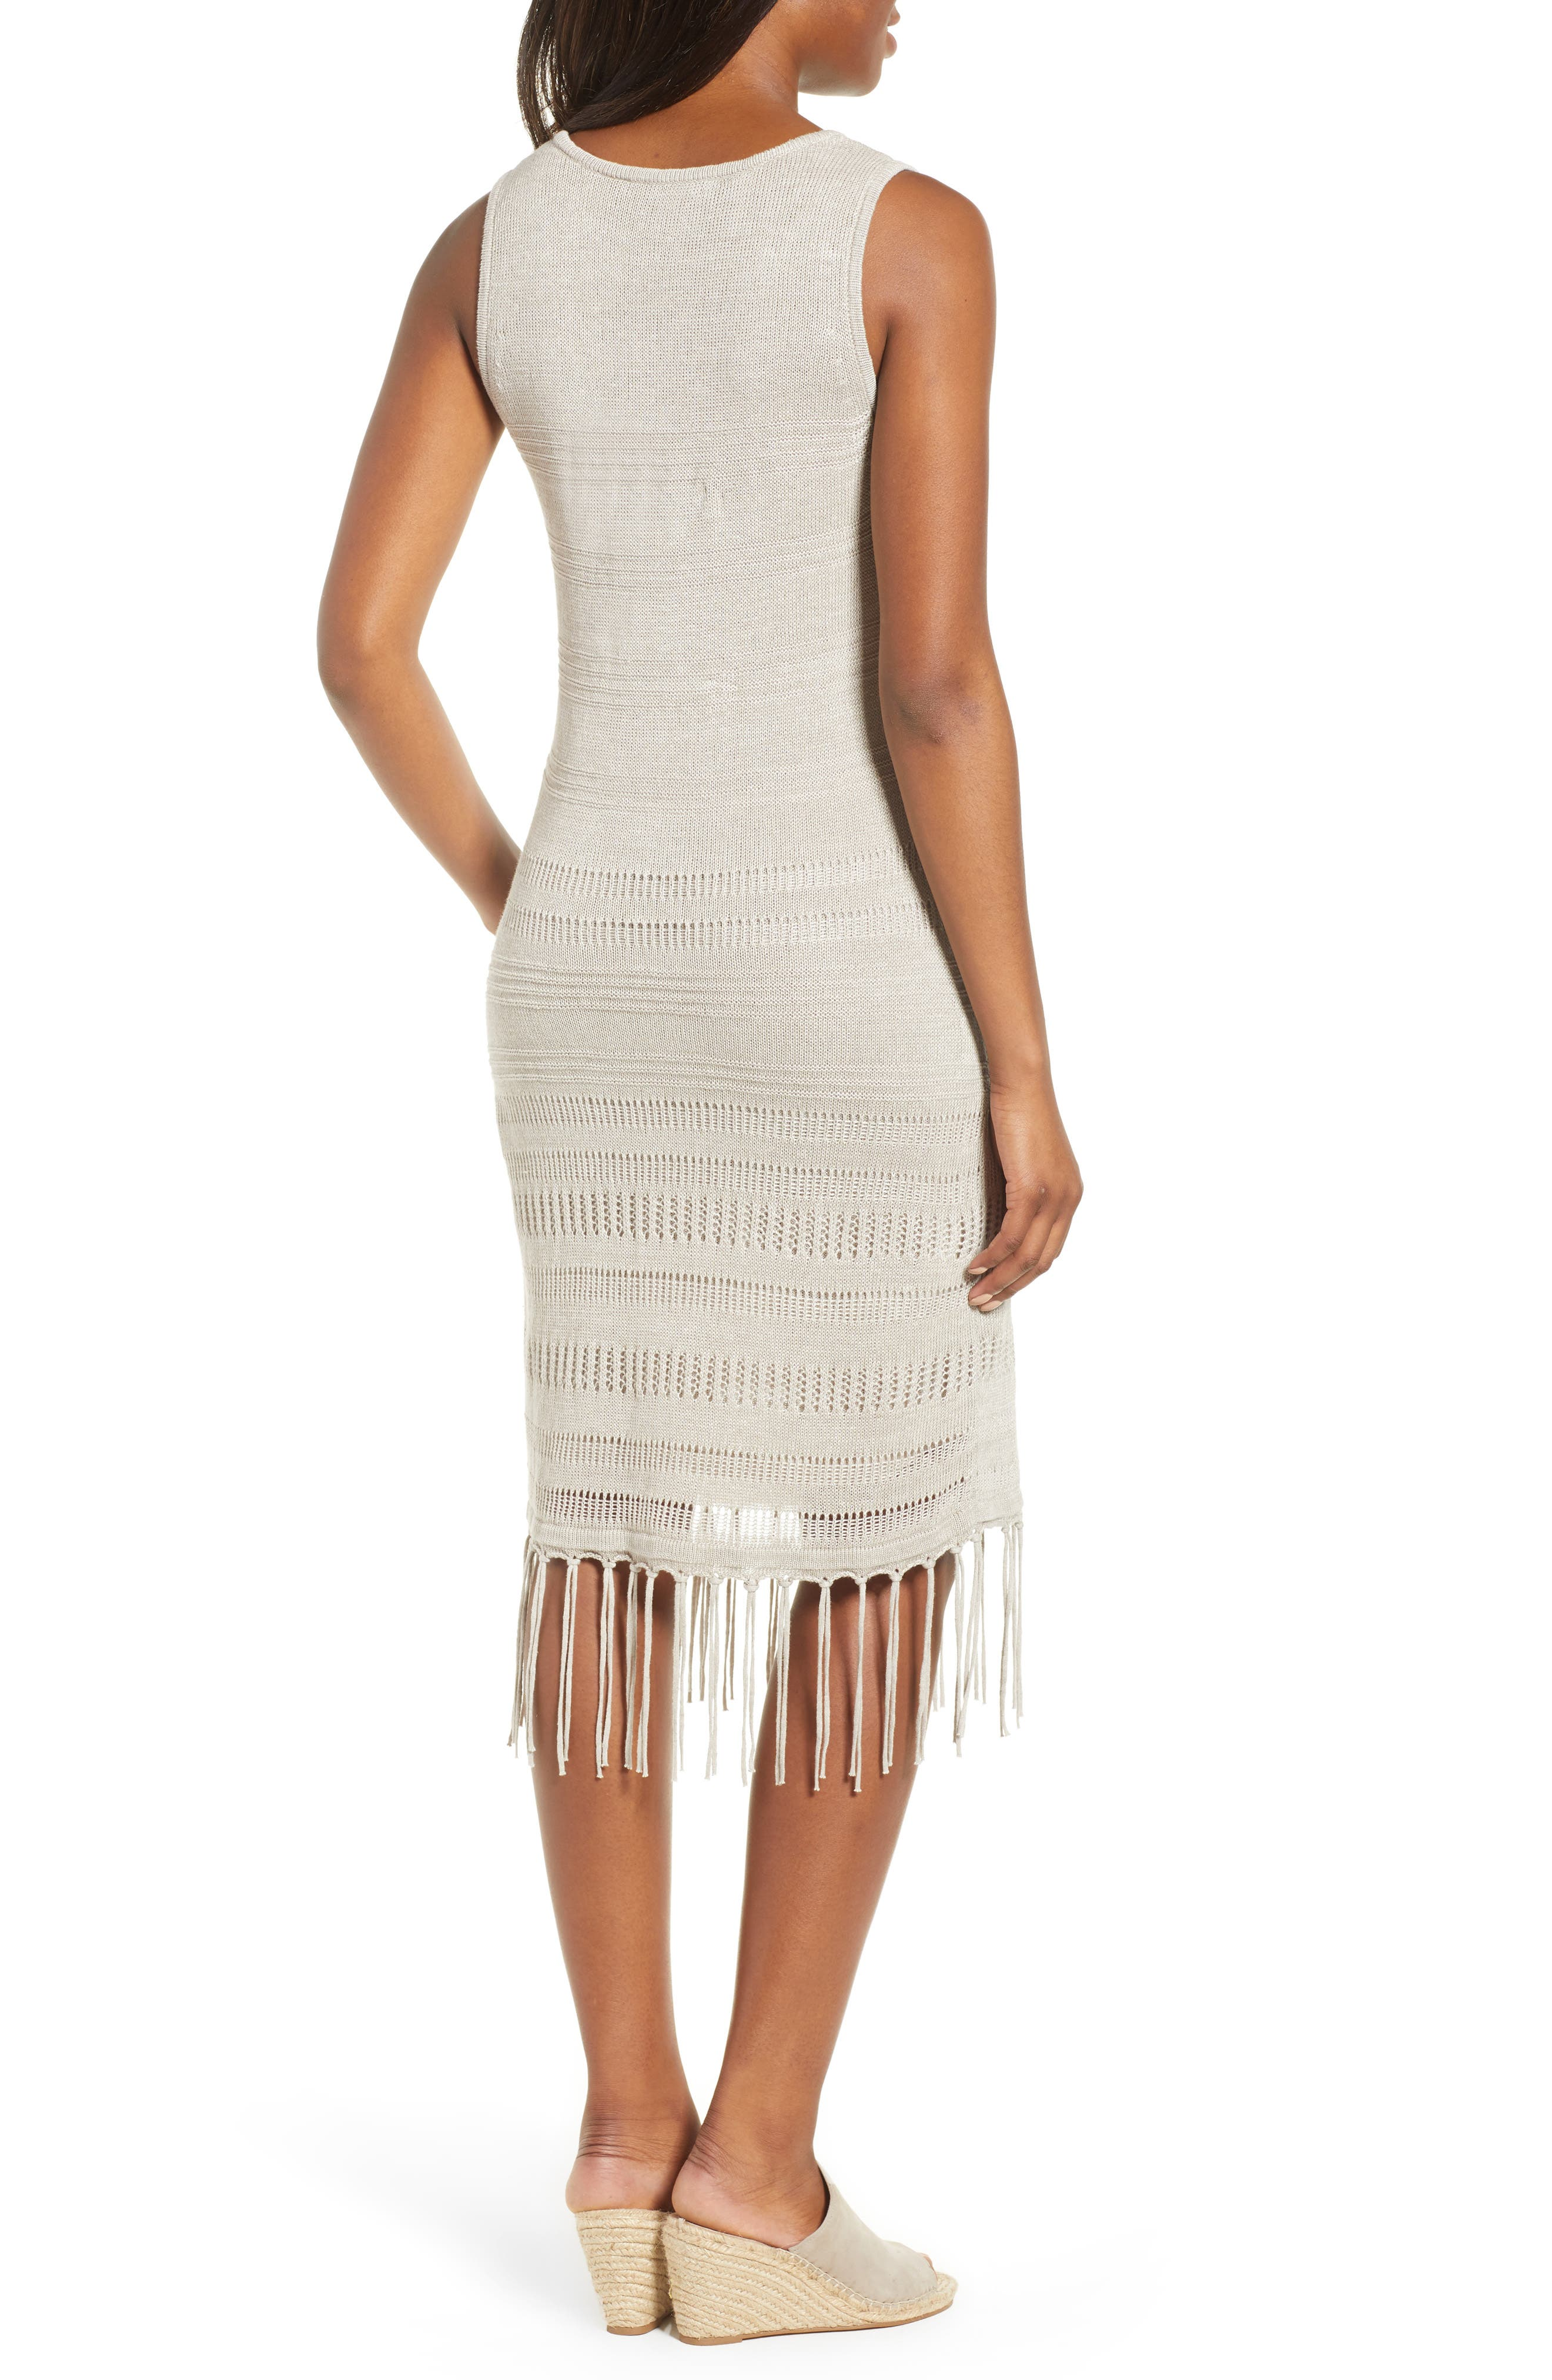 TOMMY BAHAMA,                             Pointelle Knit Tank Dress,                             Alternate thumbnail 2, color,                             NATURAL